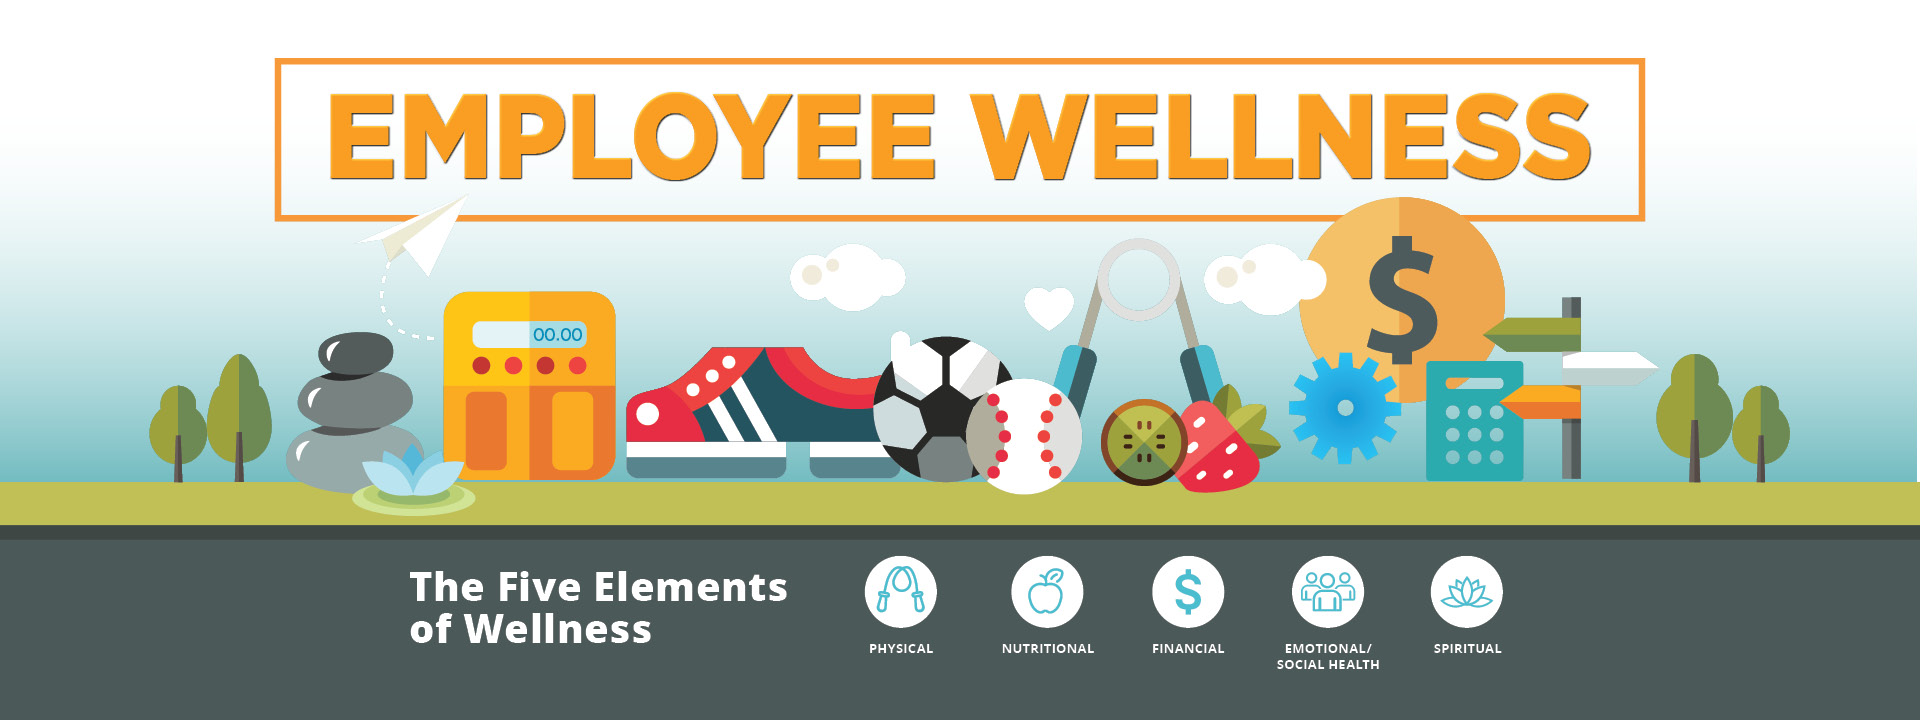 Employee Wellness Banner